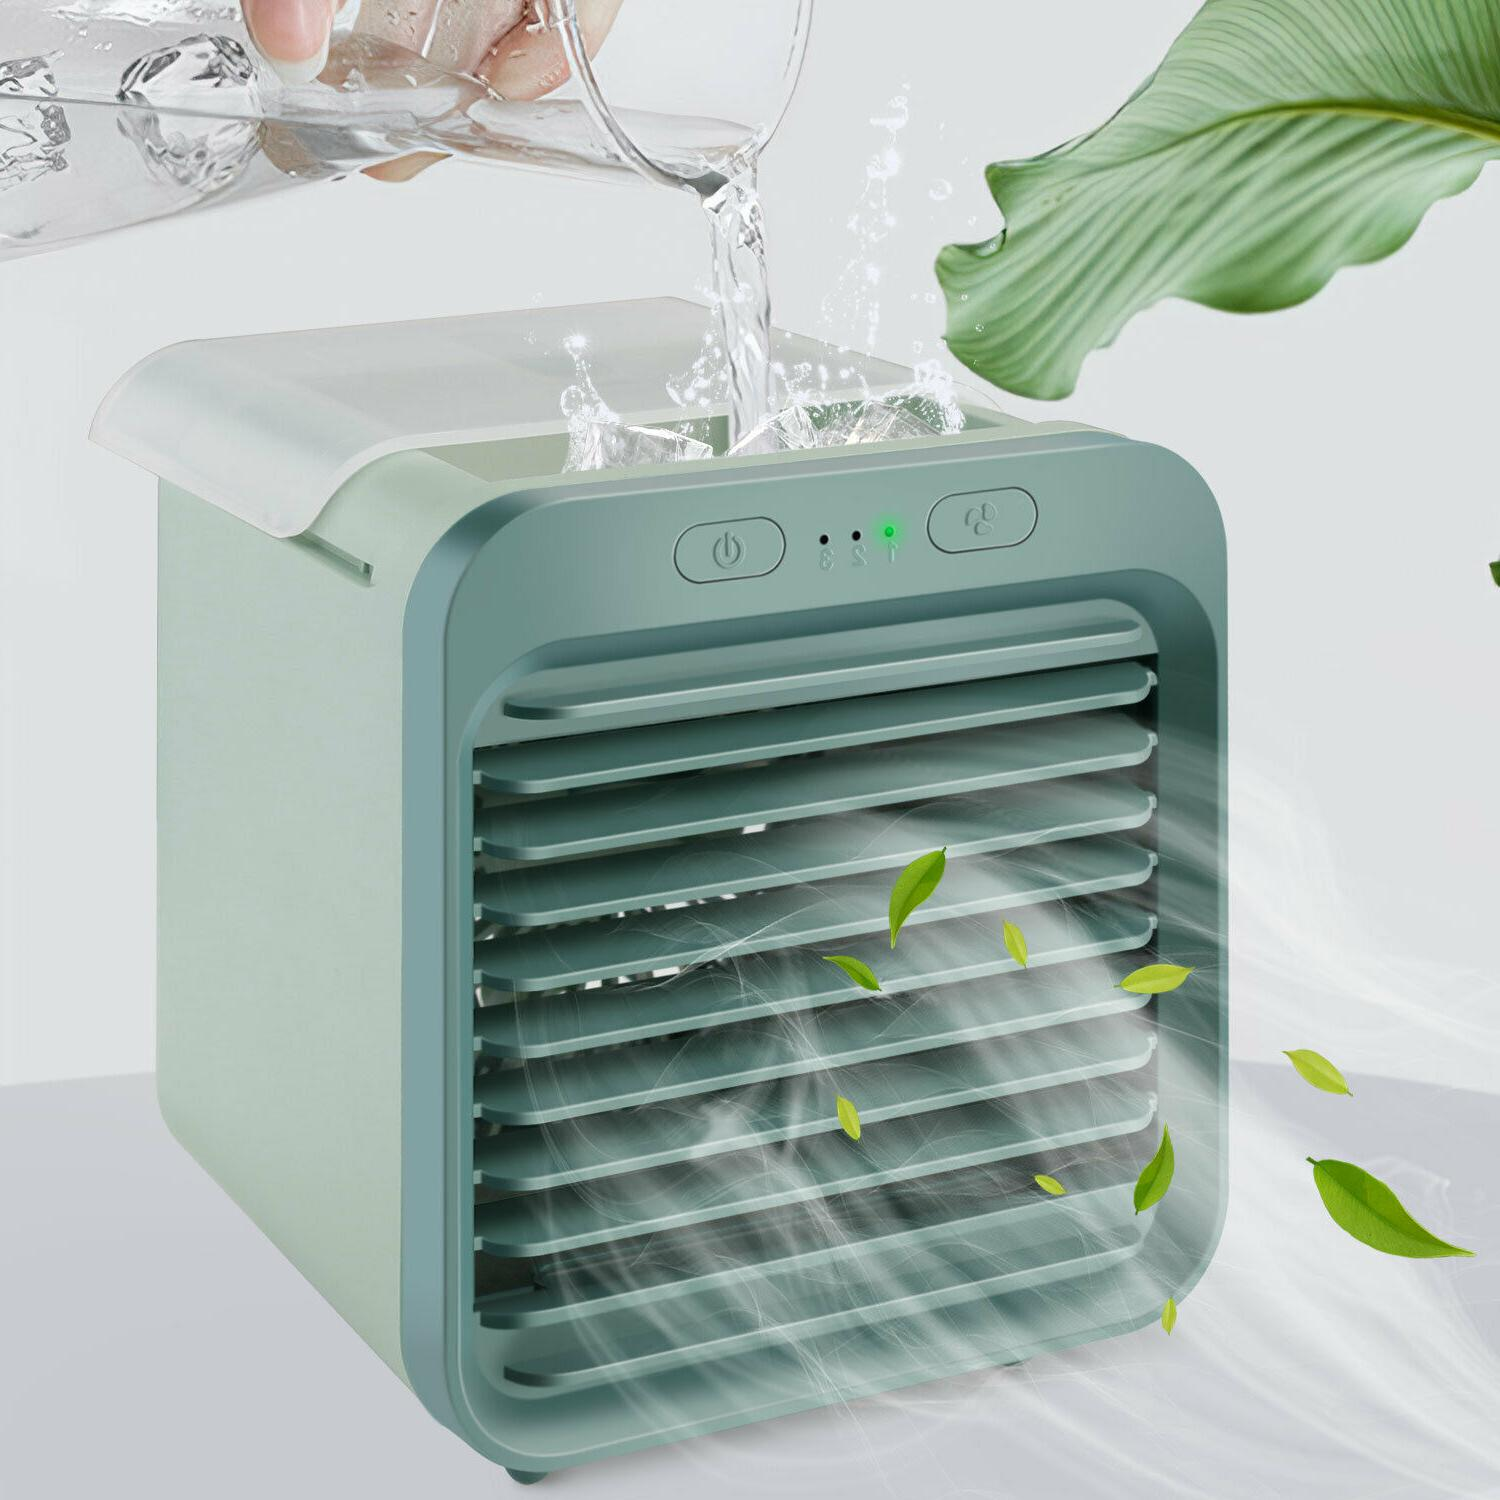 Portable Air Conditioner Cooler Fan Humidifier Purifier Home